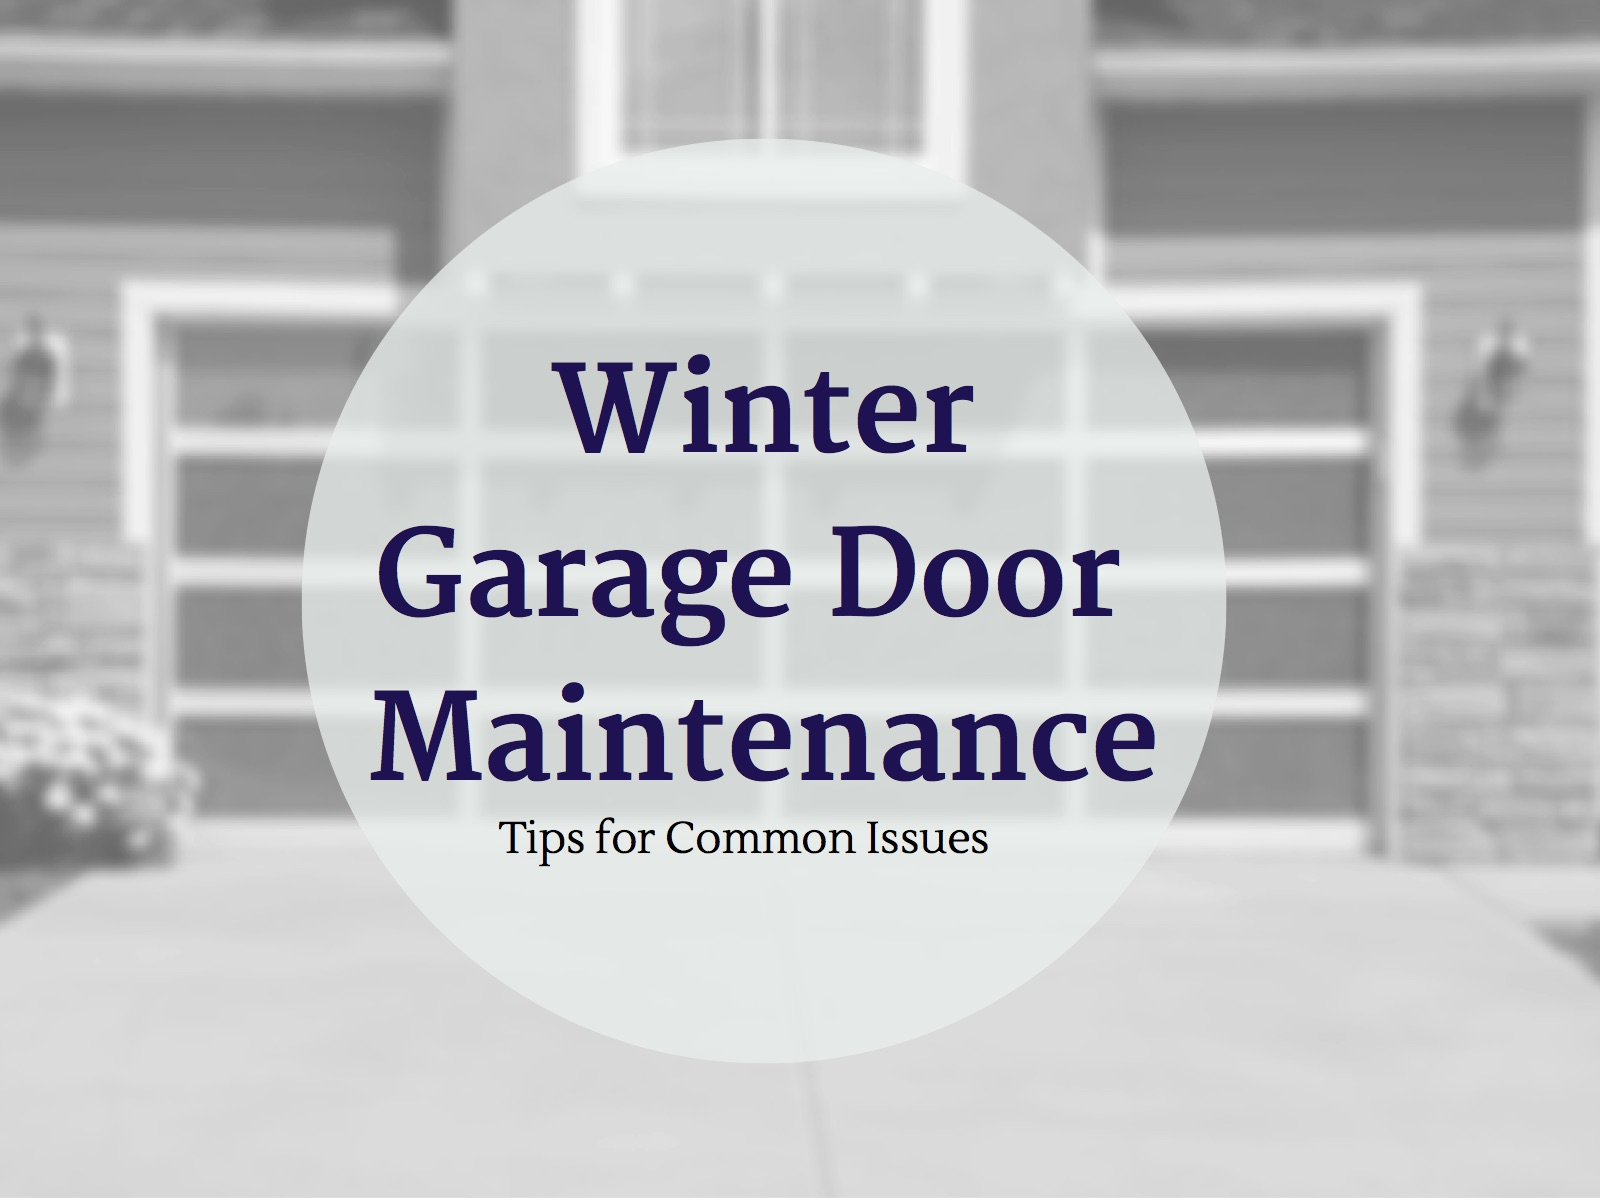 Winter Garage Door Maintenance